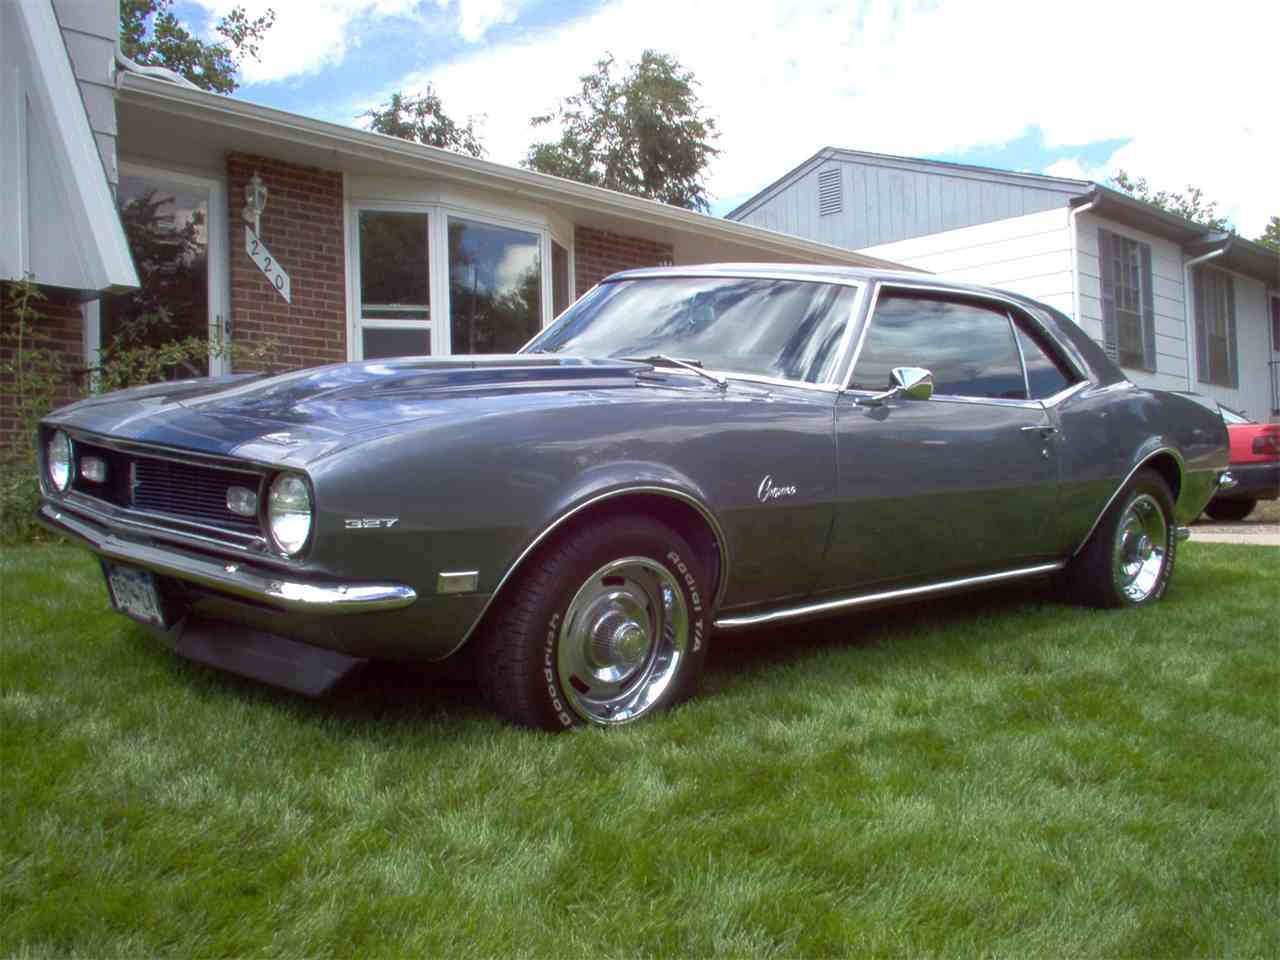 1968 Chevrolet Camaro For Sale Classiccars Com Cc 1022380